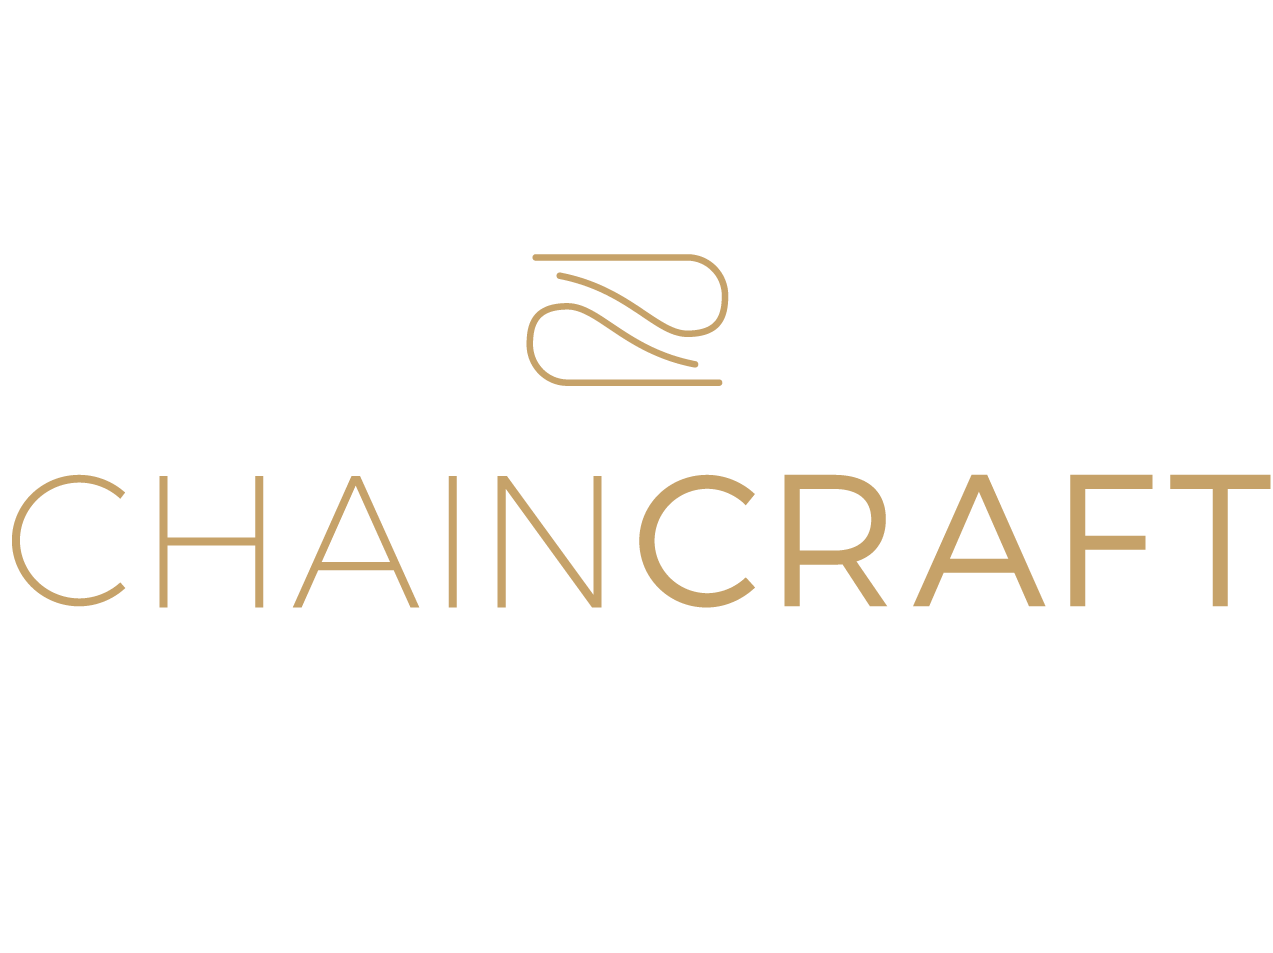 Chaincraft